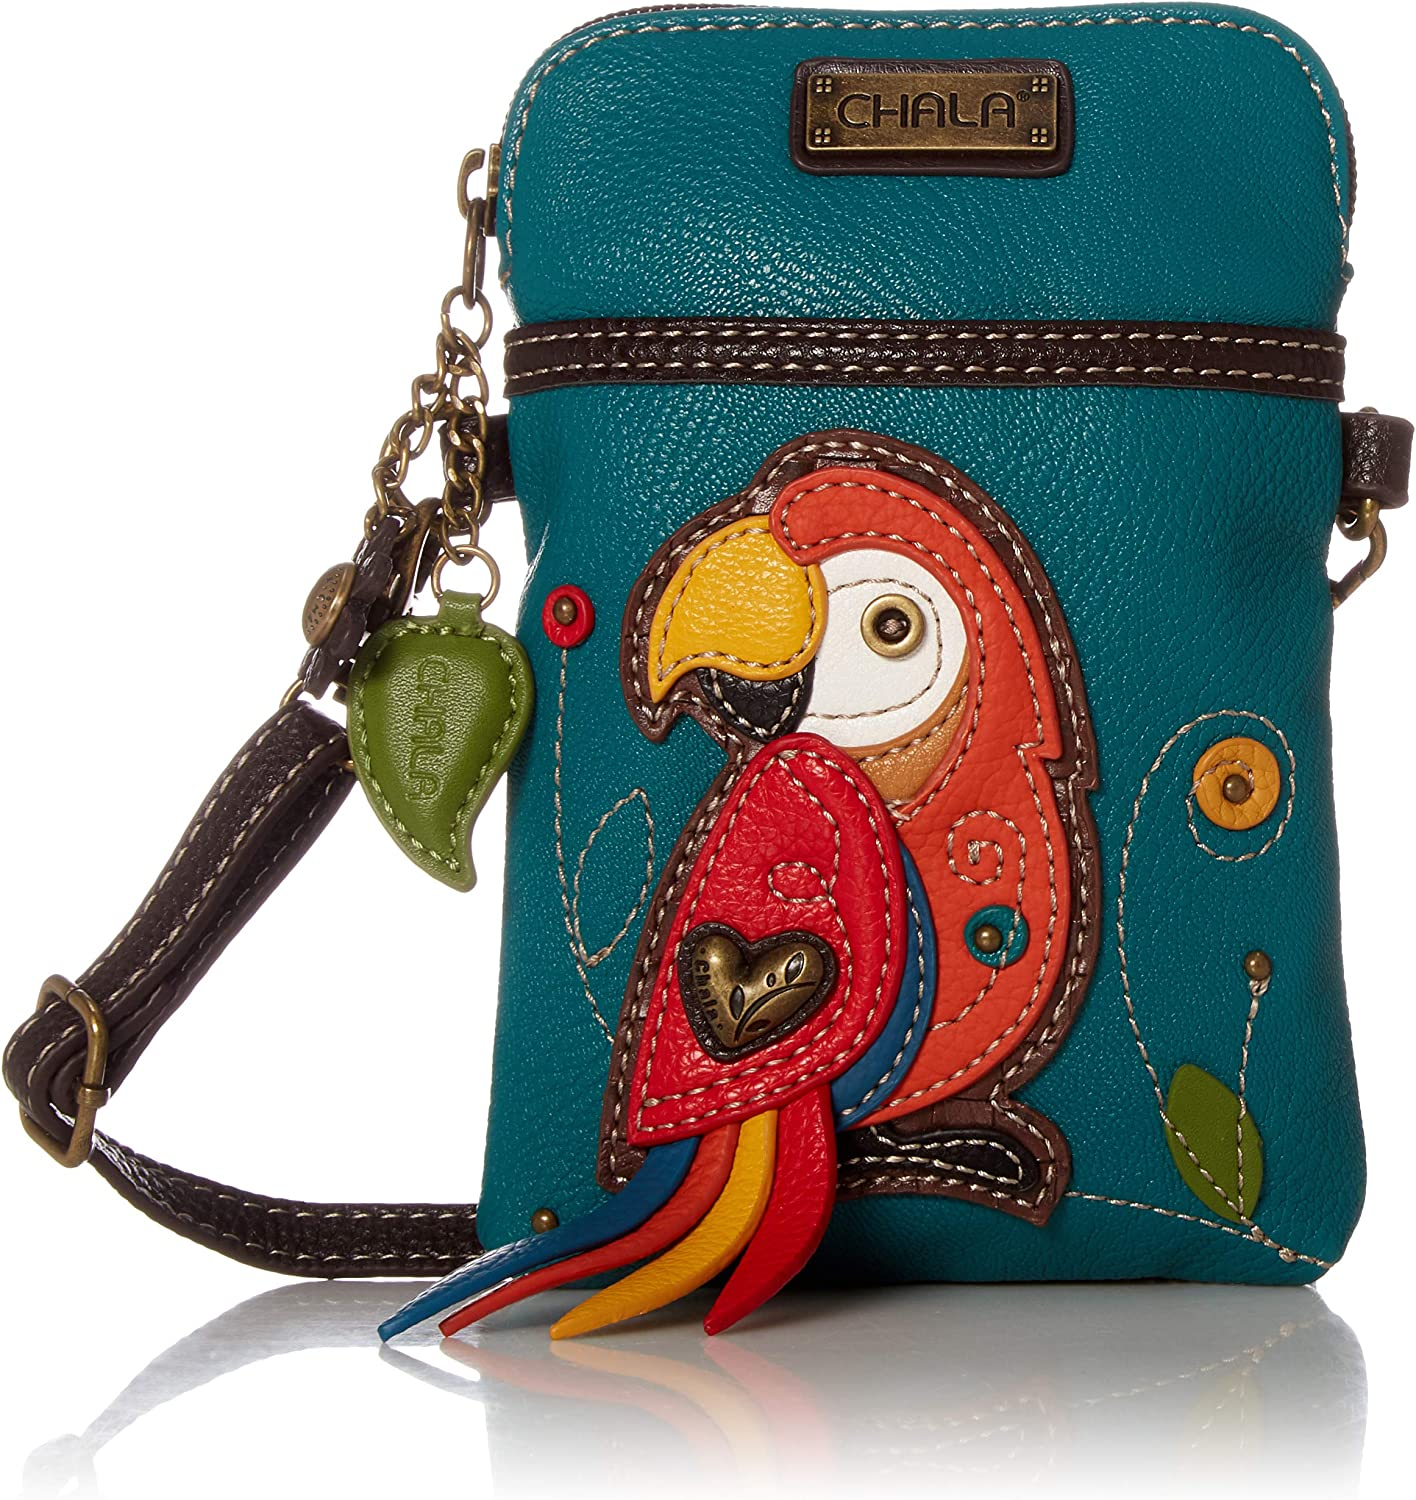 Chala Red Parrot Cellphone Crossbody Handbag - Convertible Strap Bird Lovers